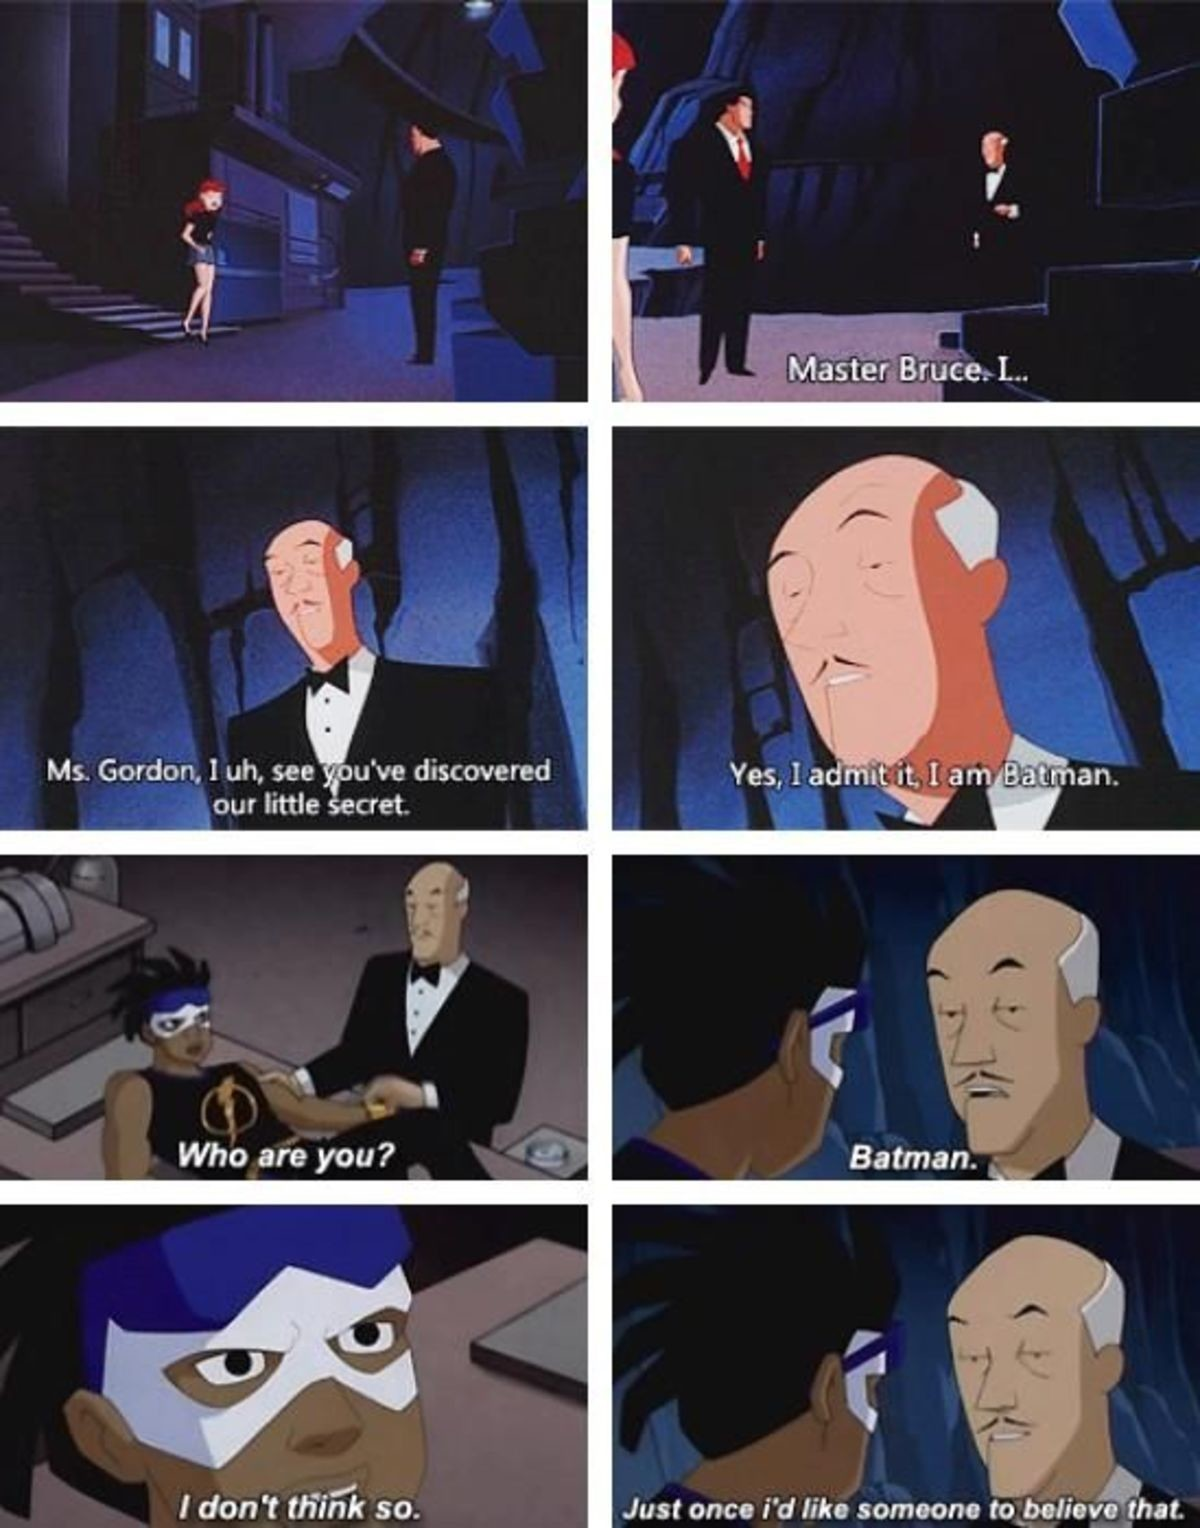 Sassy Alfred. .. But isn't he a Kung-Fu master or something like that?